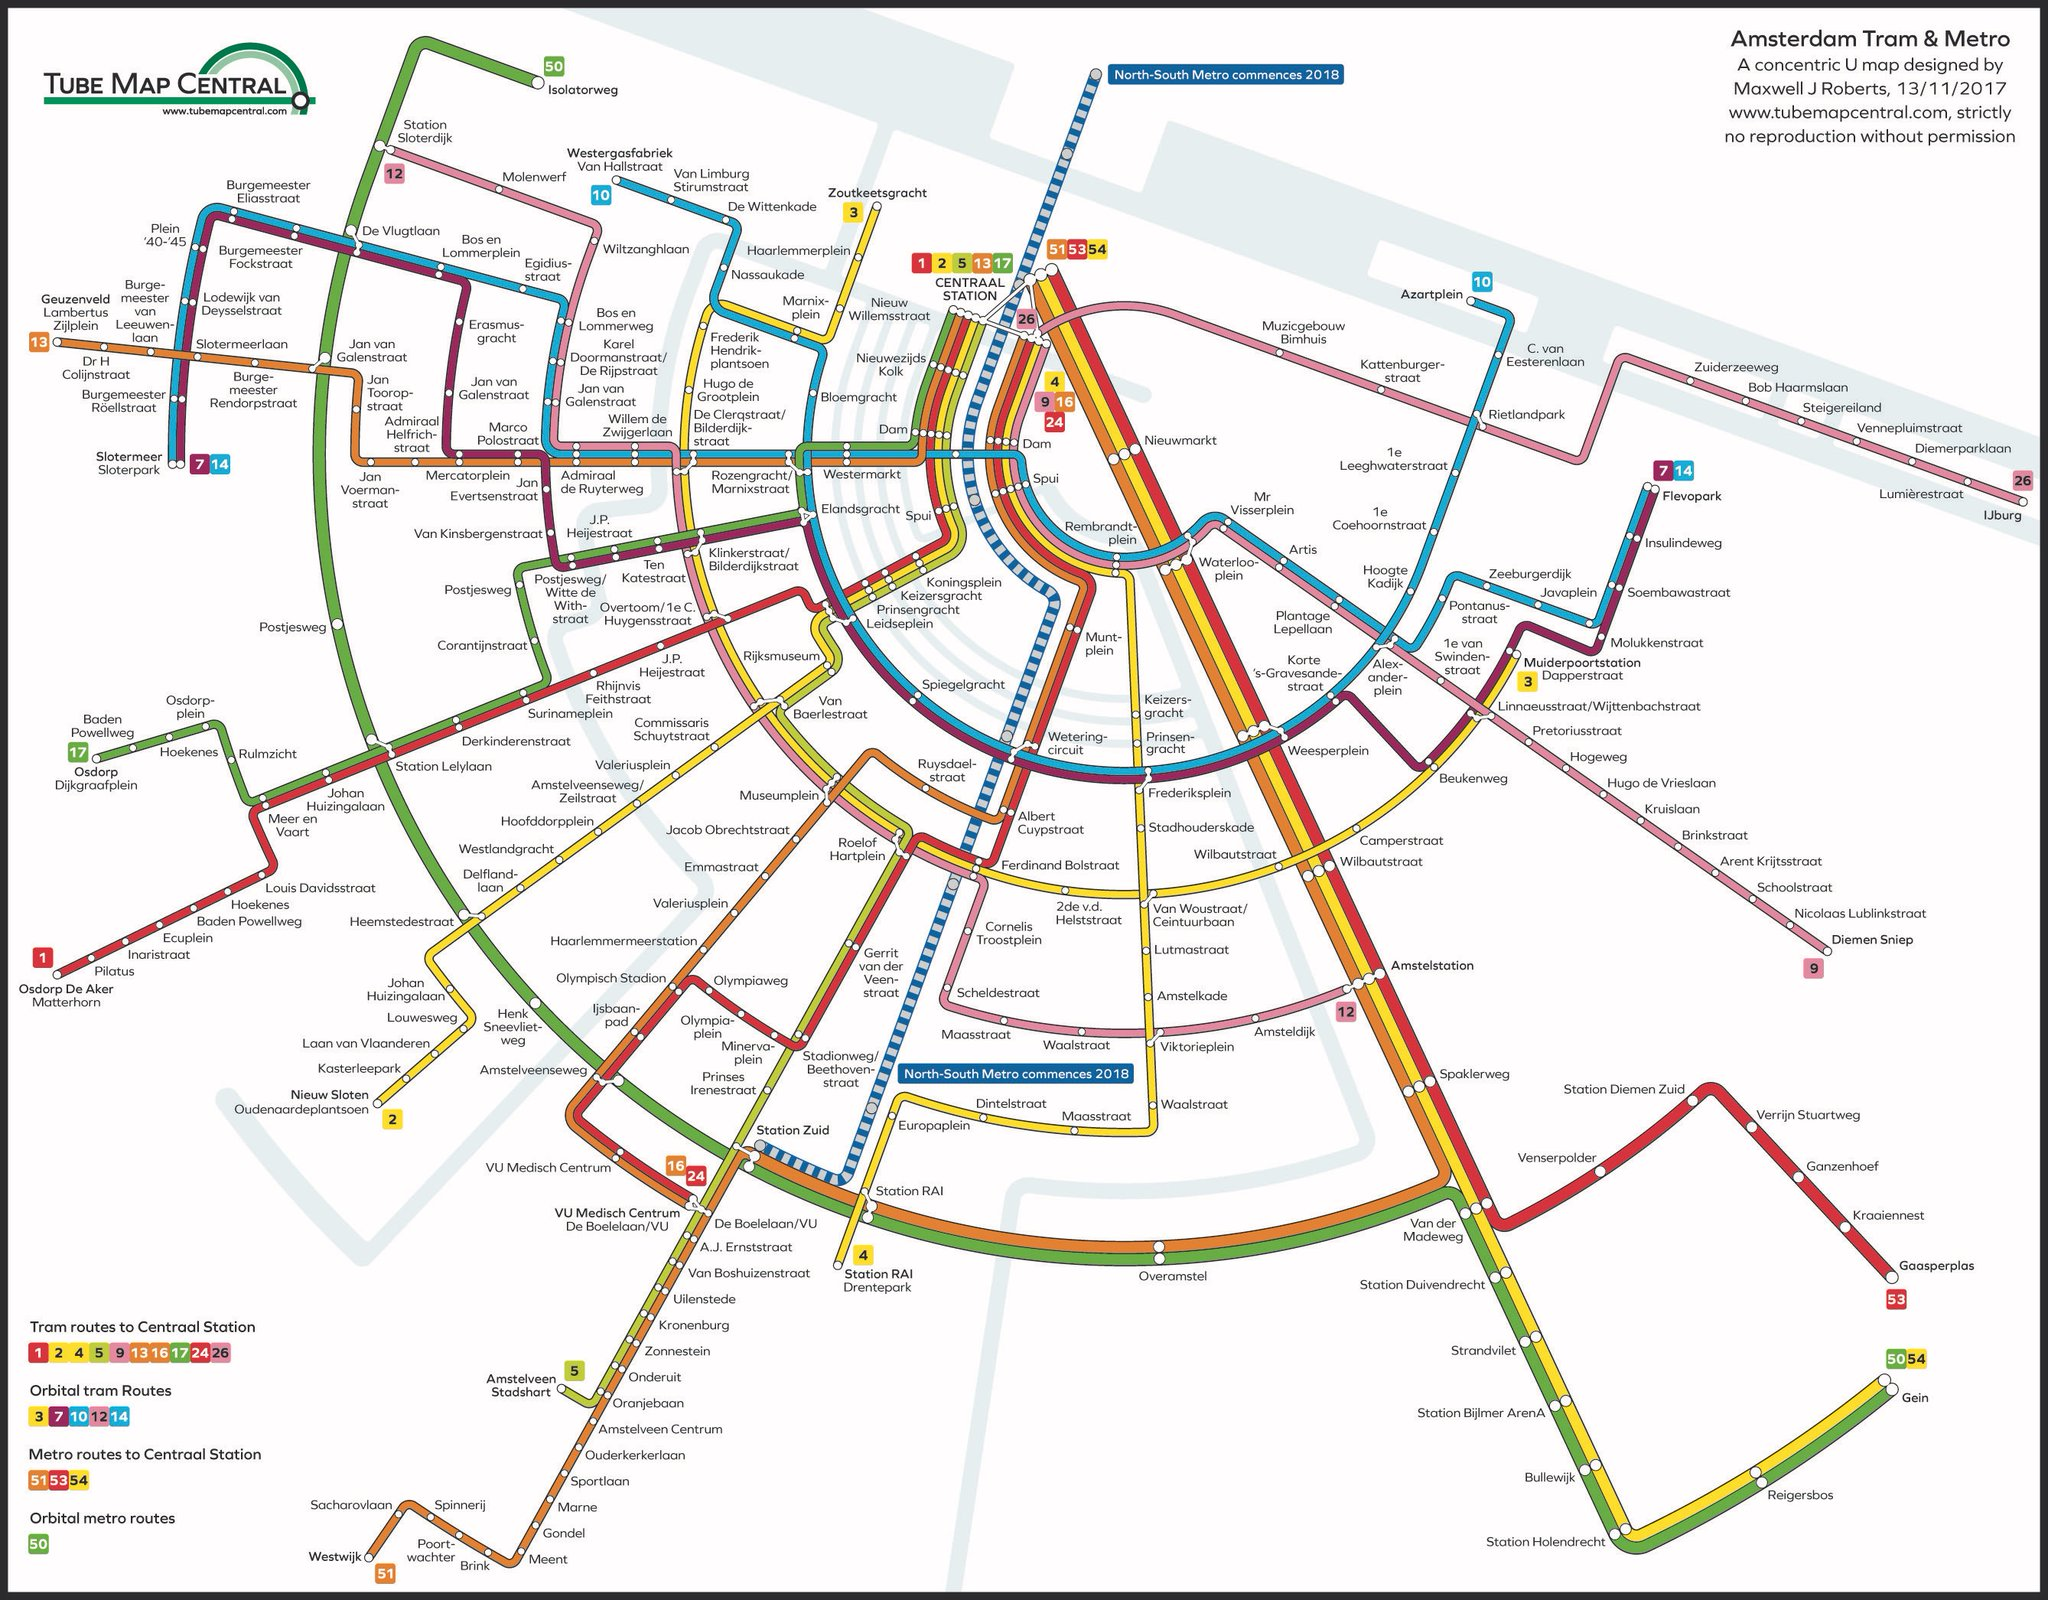 How To Outline Story Like Subway Map.Holland Dutch Train Rail Maps